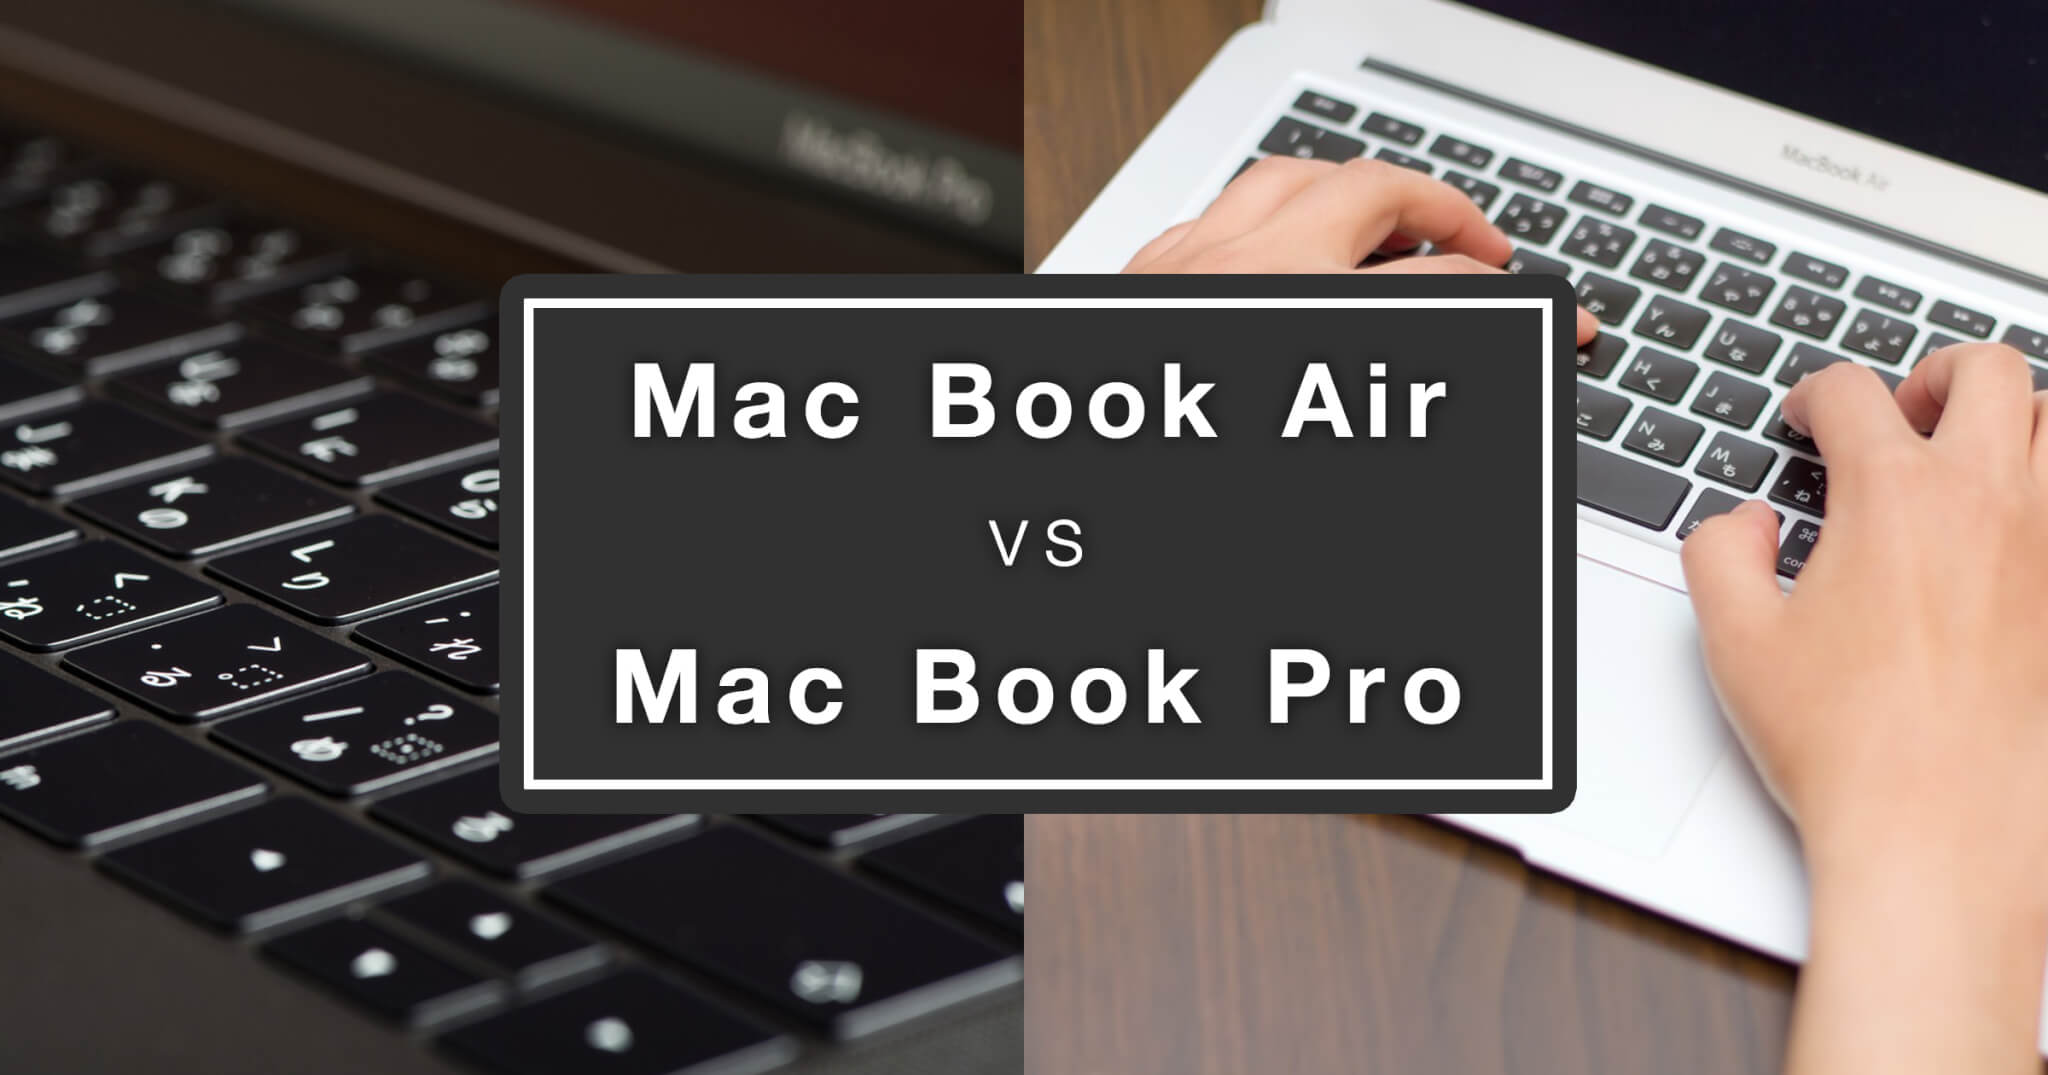 Mac Book Air vs Mac Book Pro